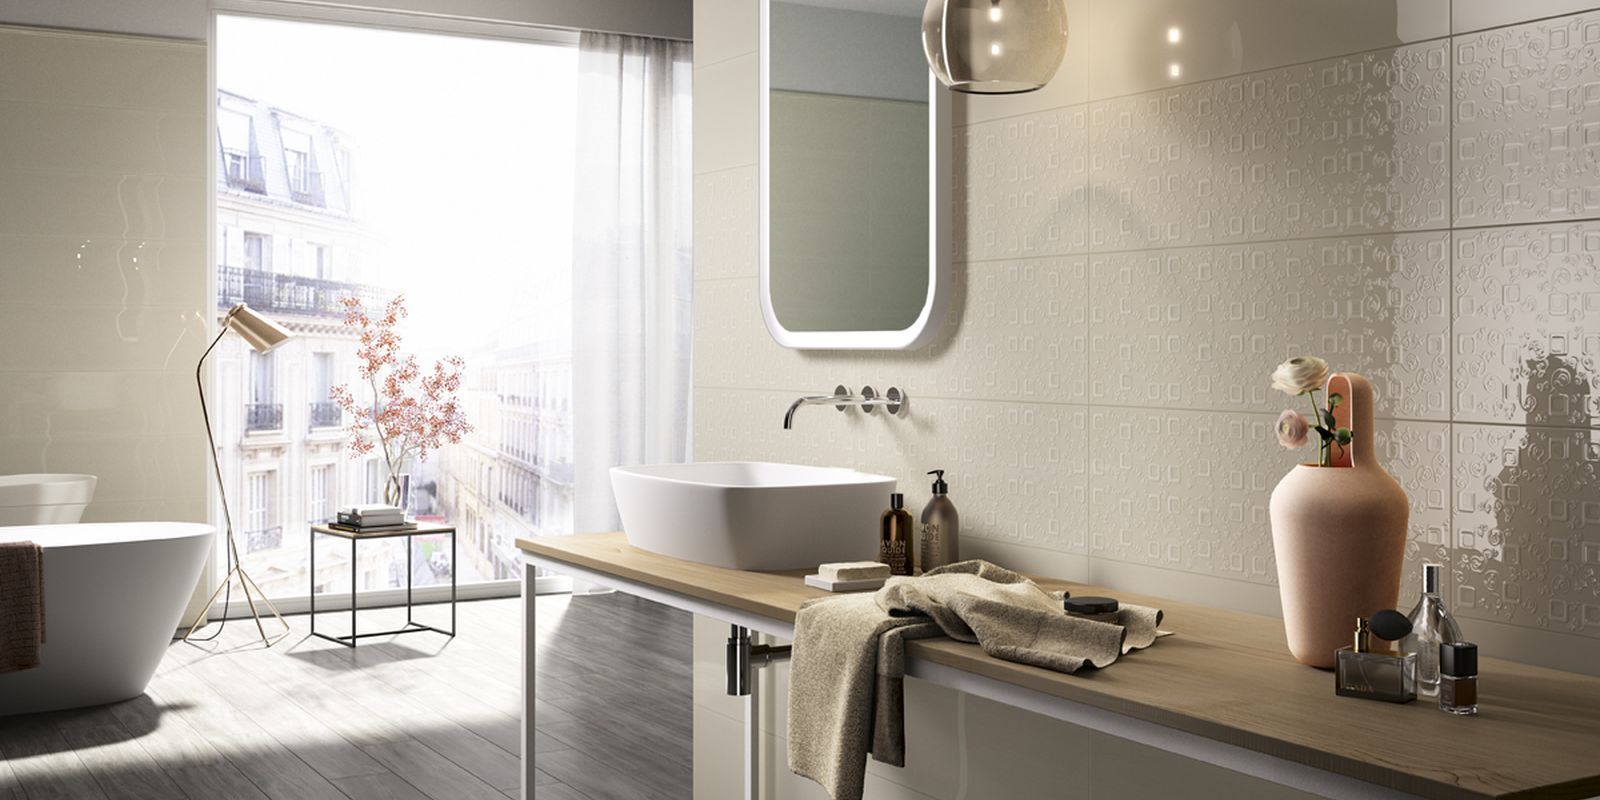 Piastrelle poetique bagno moderno ceramica bicottura am poetique 4 bathroom bathroom - Piastrelle bagno moderno ...